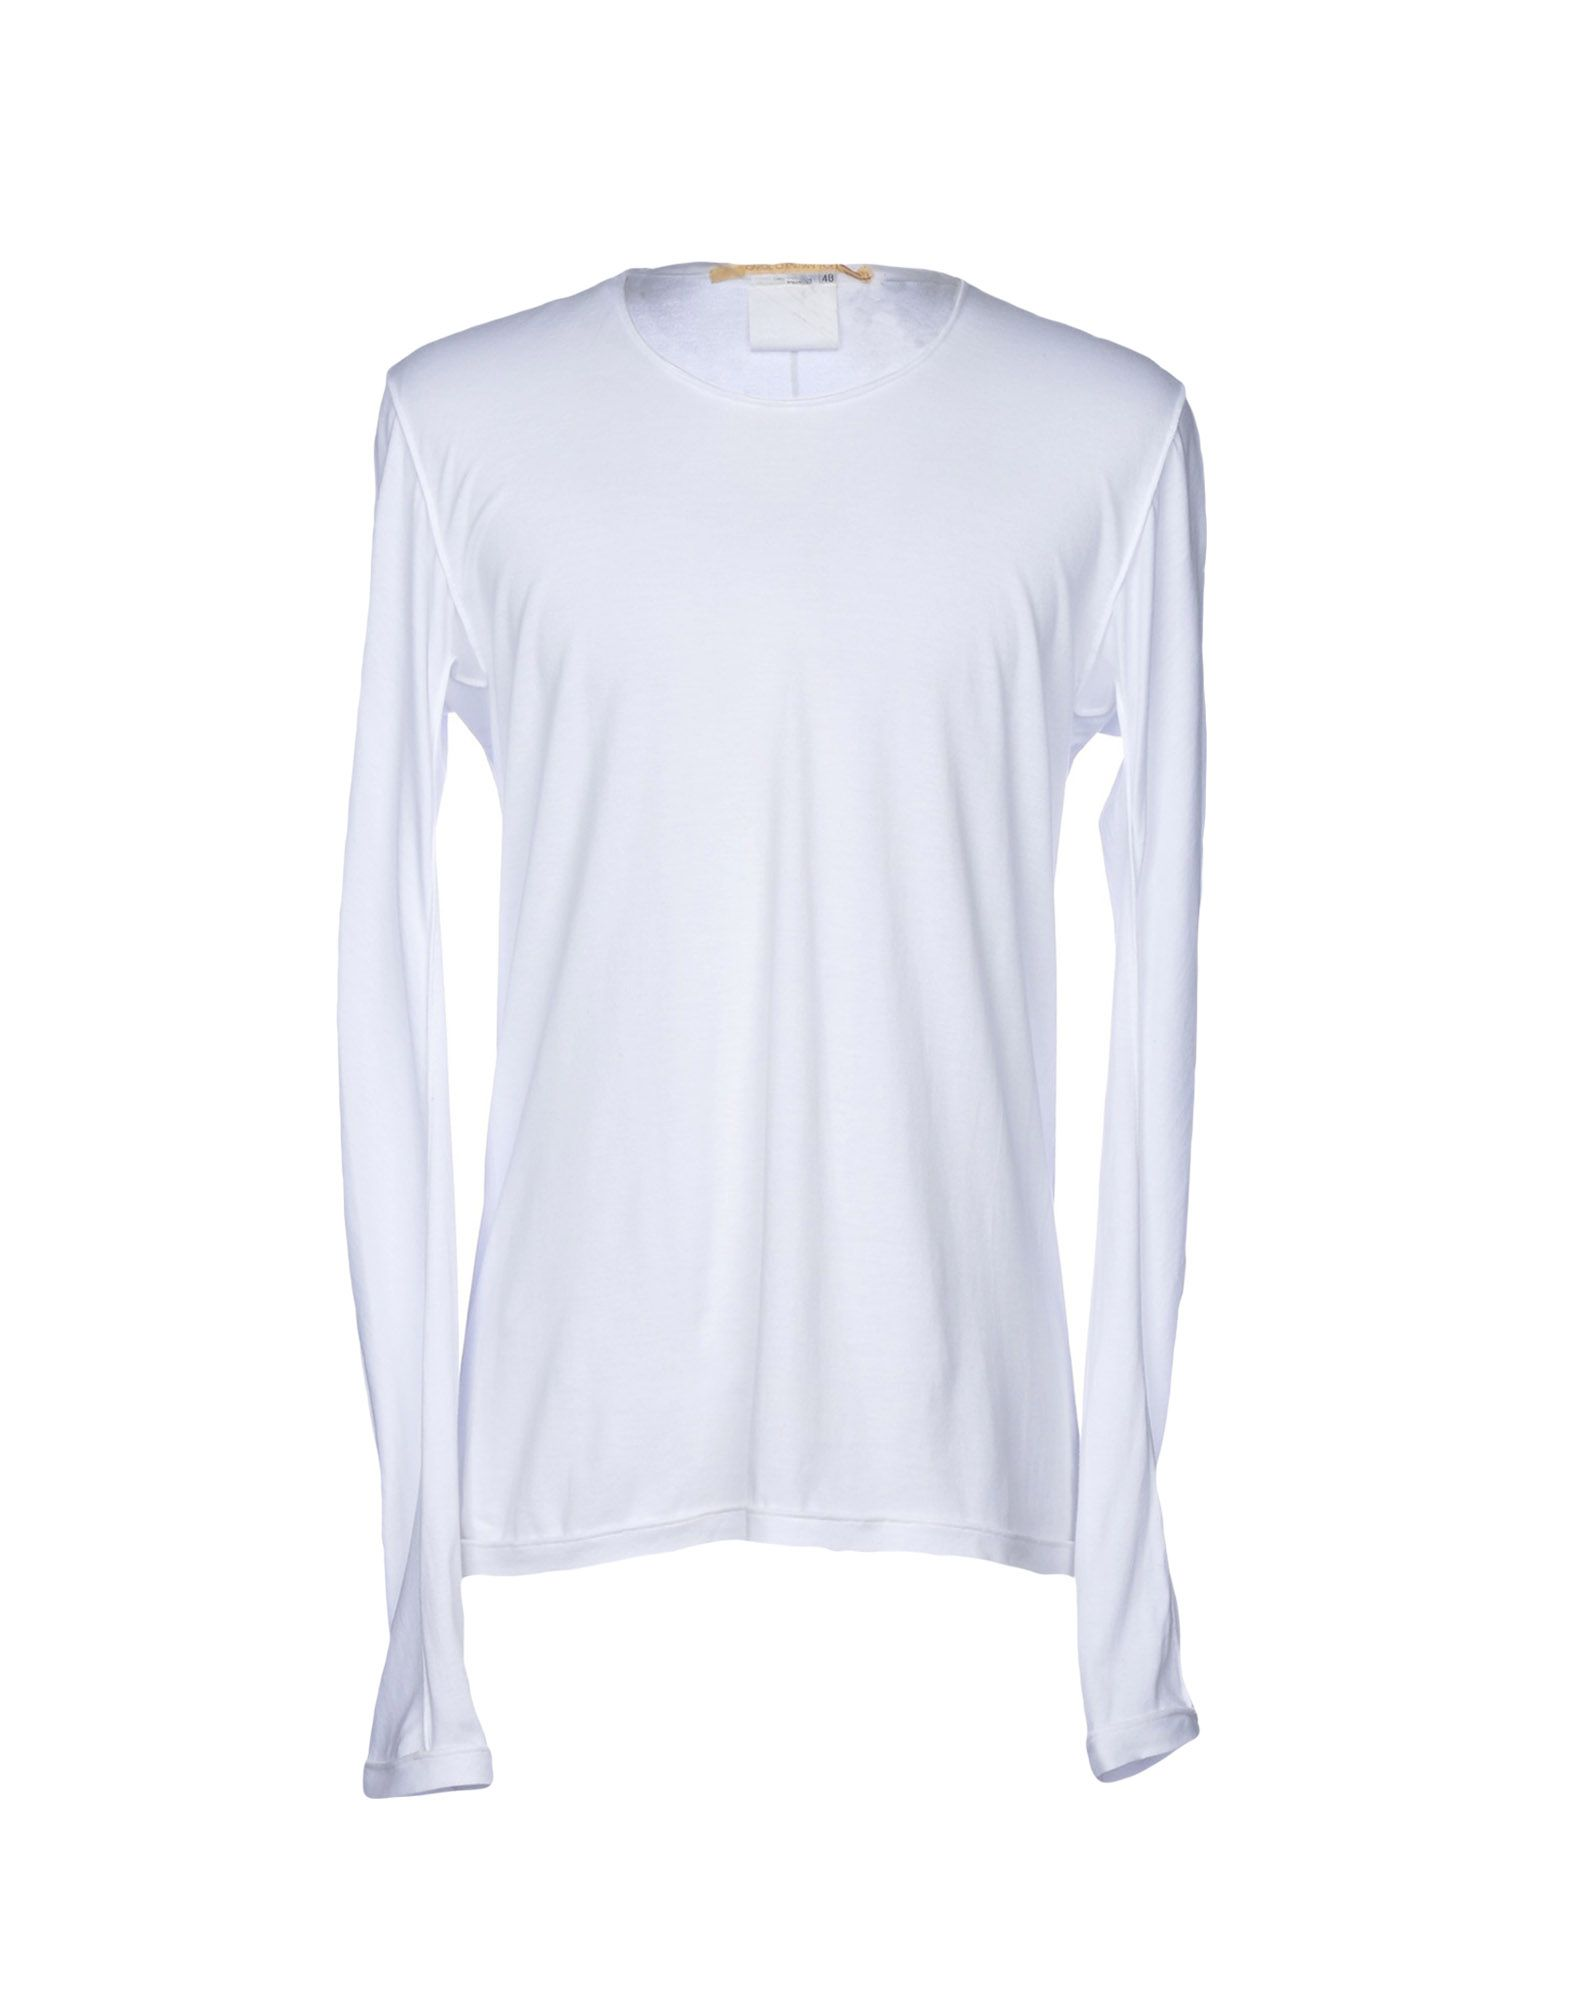 CAROL CHRISTIAN POELL T-Shirt in White